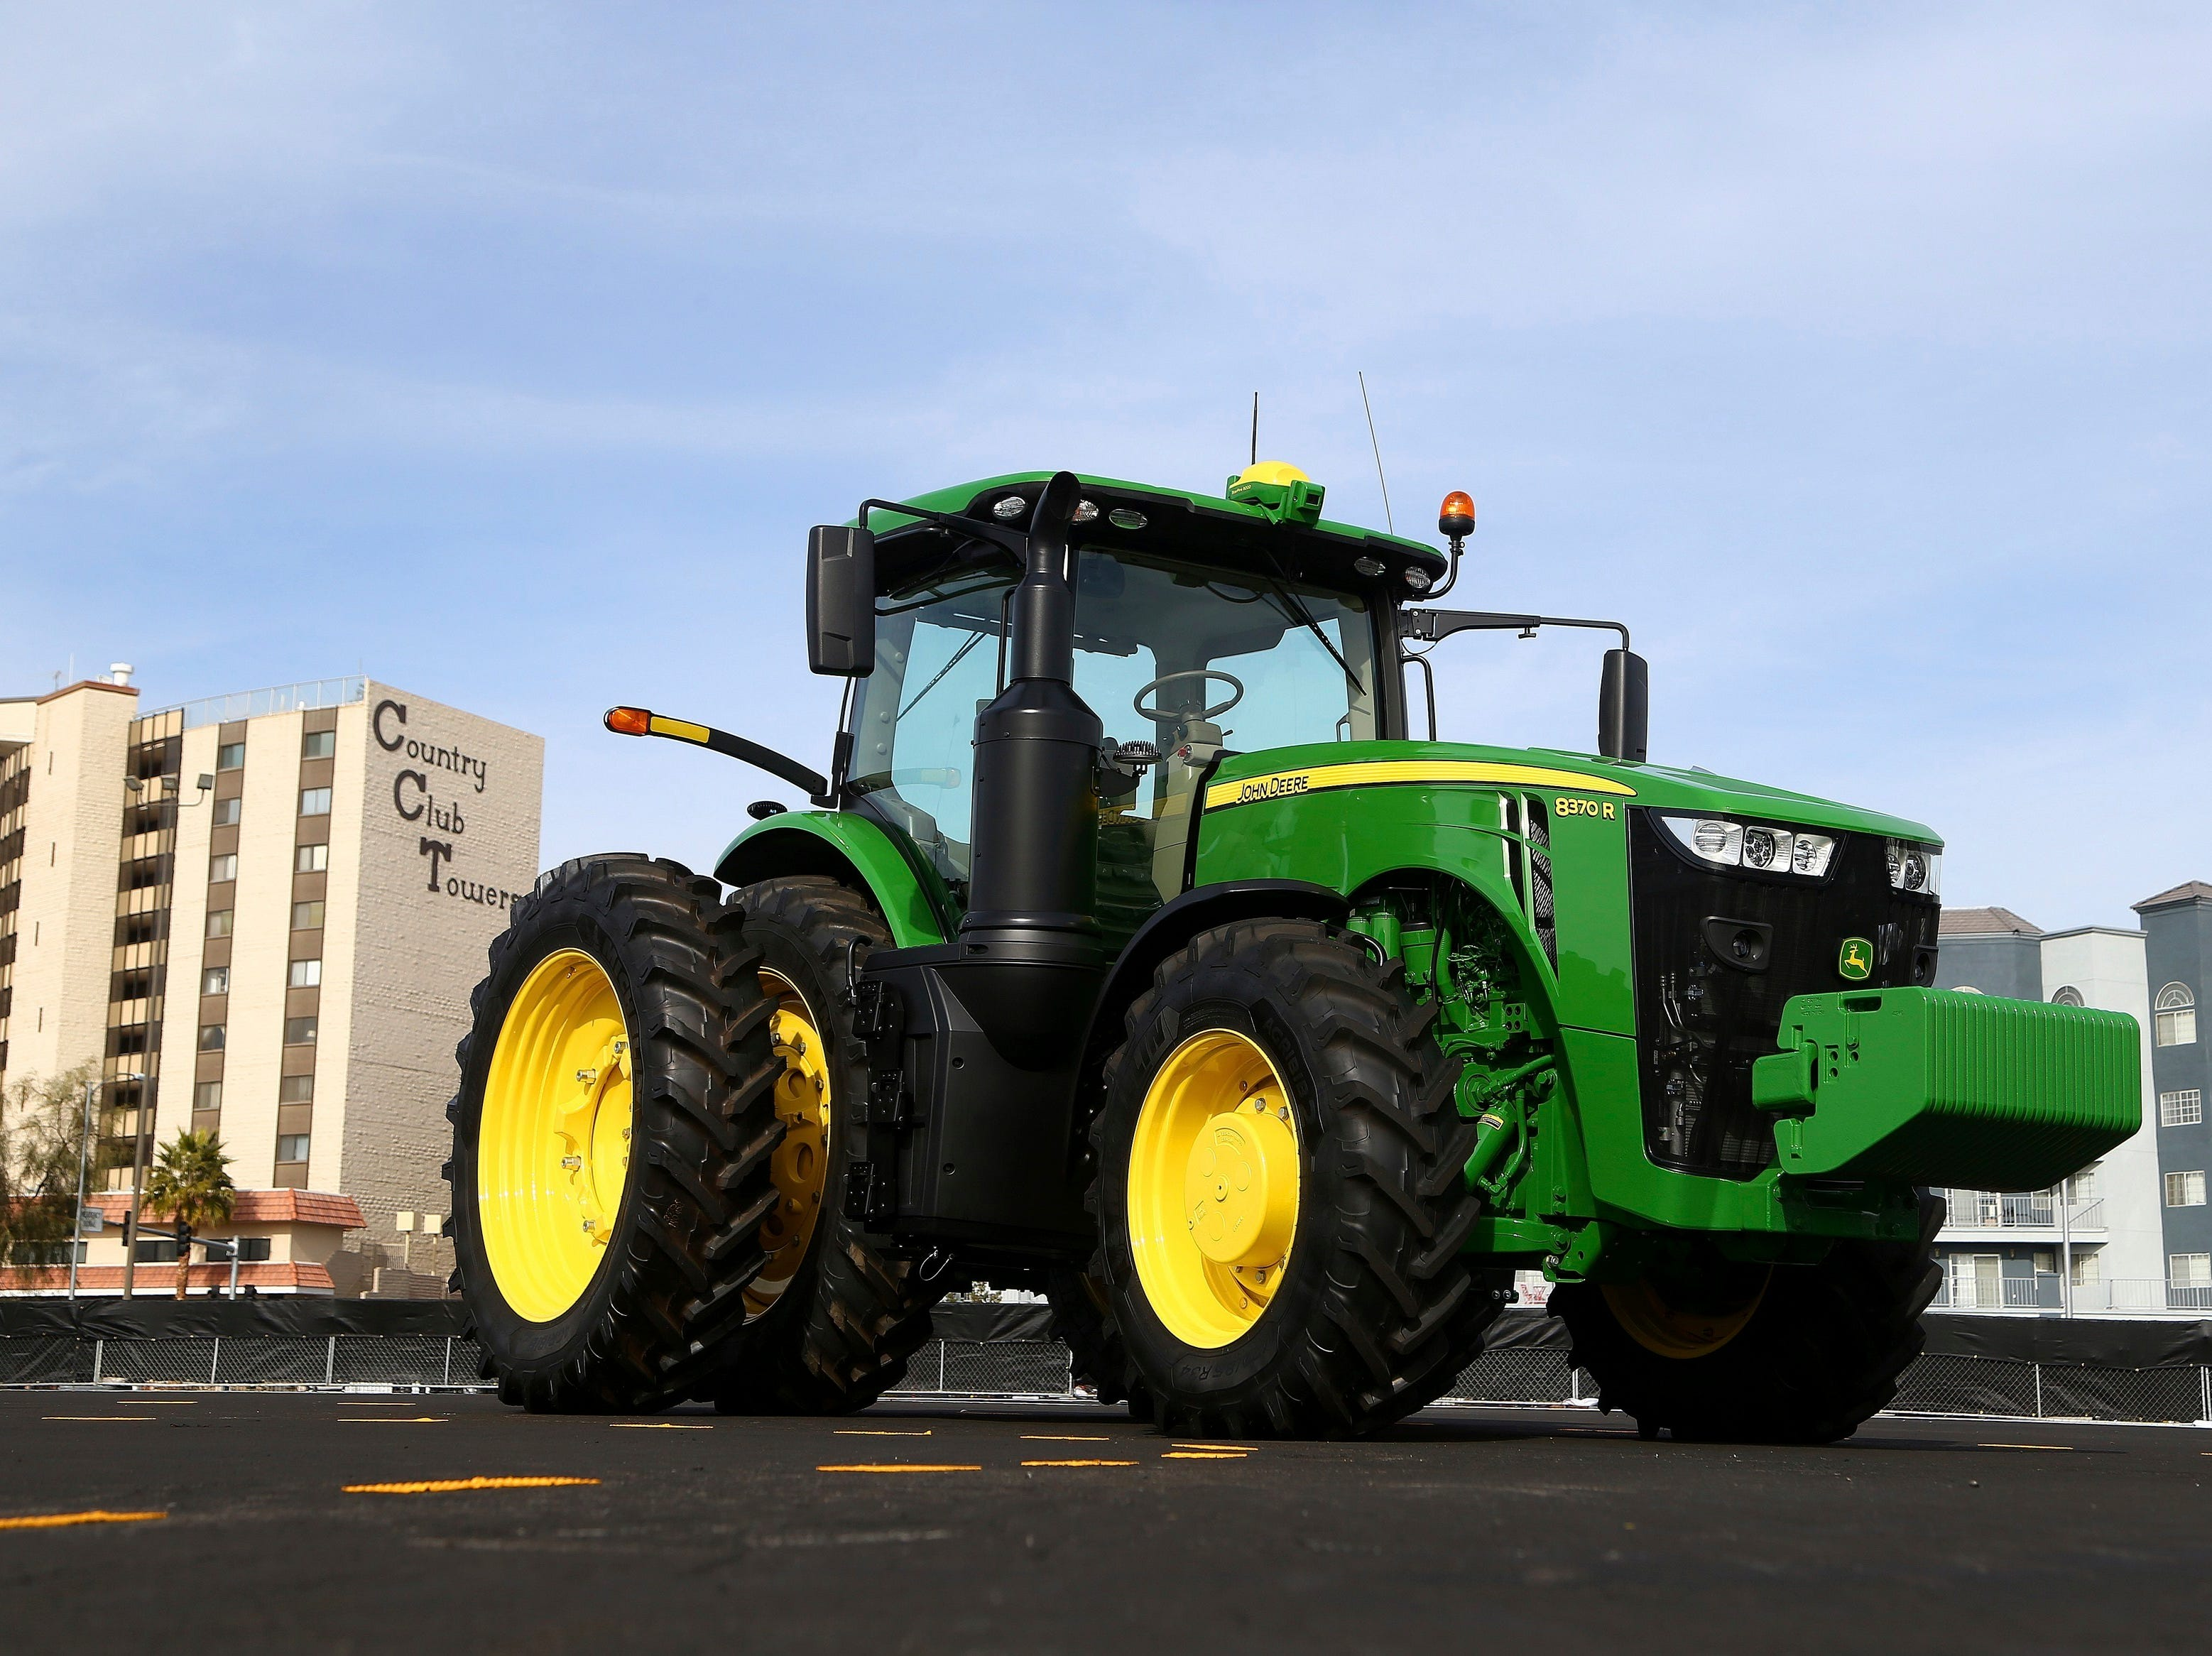 John Deere has hauled in a self-driving tractor aided by cameras with computer-vision technology to track the self-driving precision and program the route to be driven, as shown at CES International on Tuesday, Jan. 8, 2019, in Las Vegas.